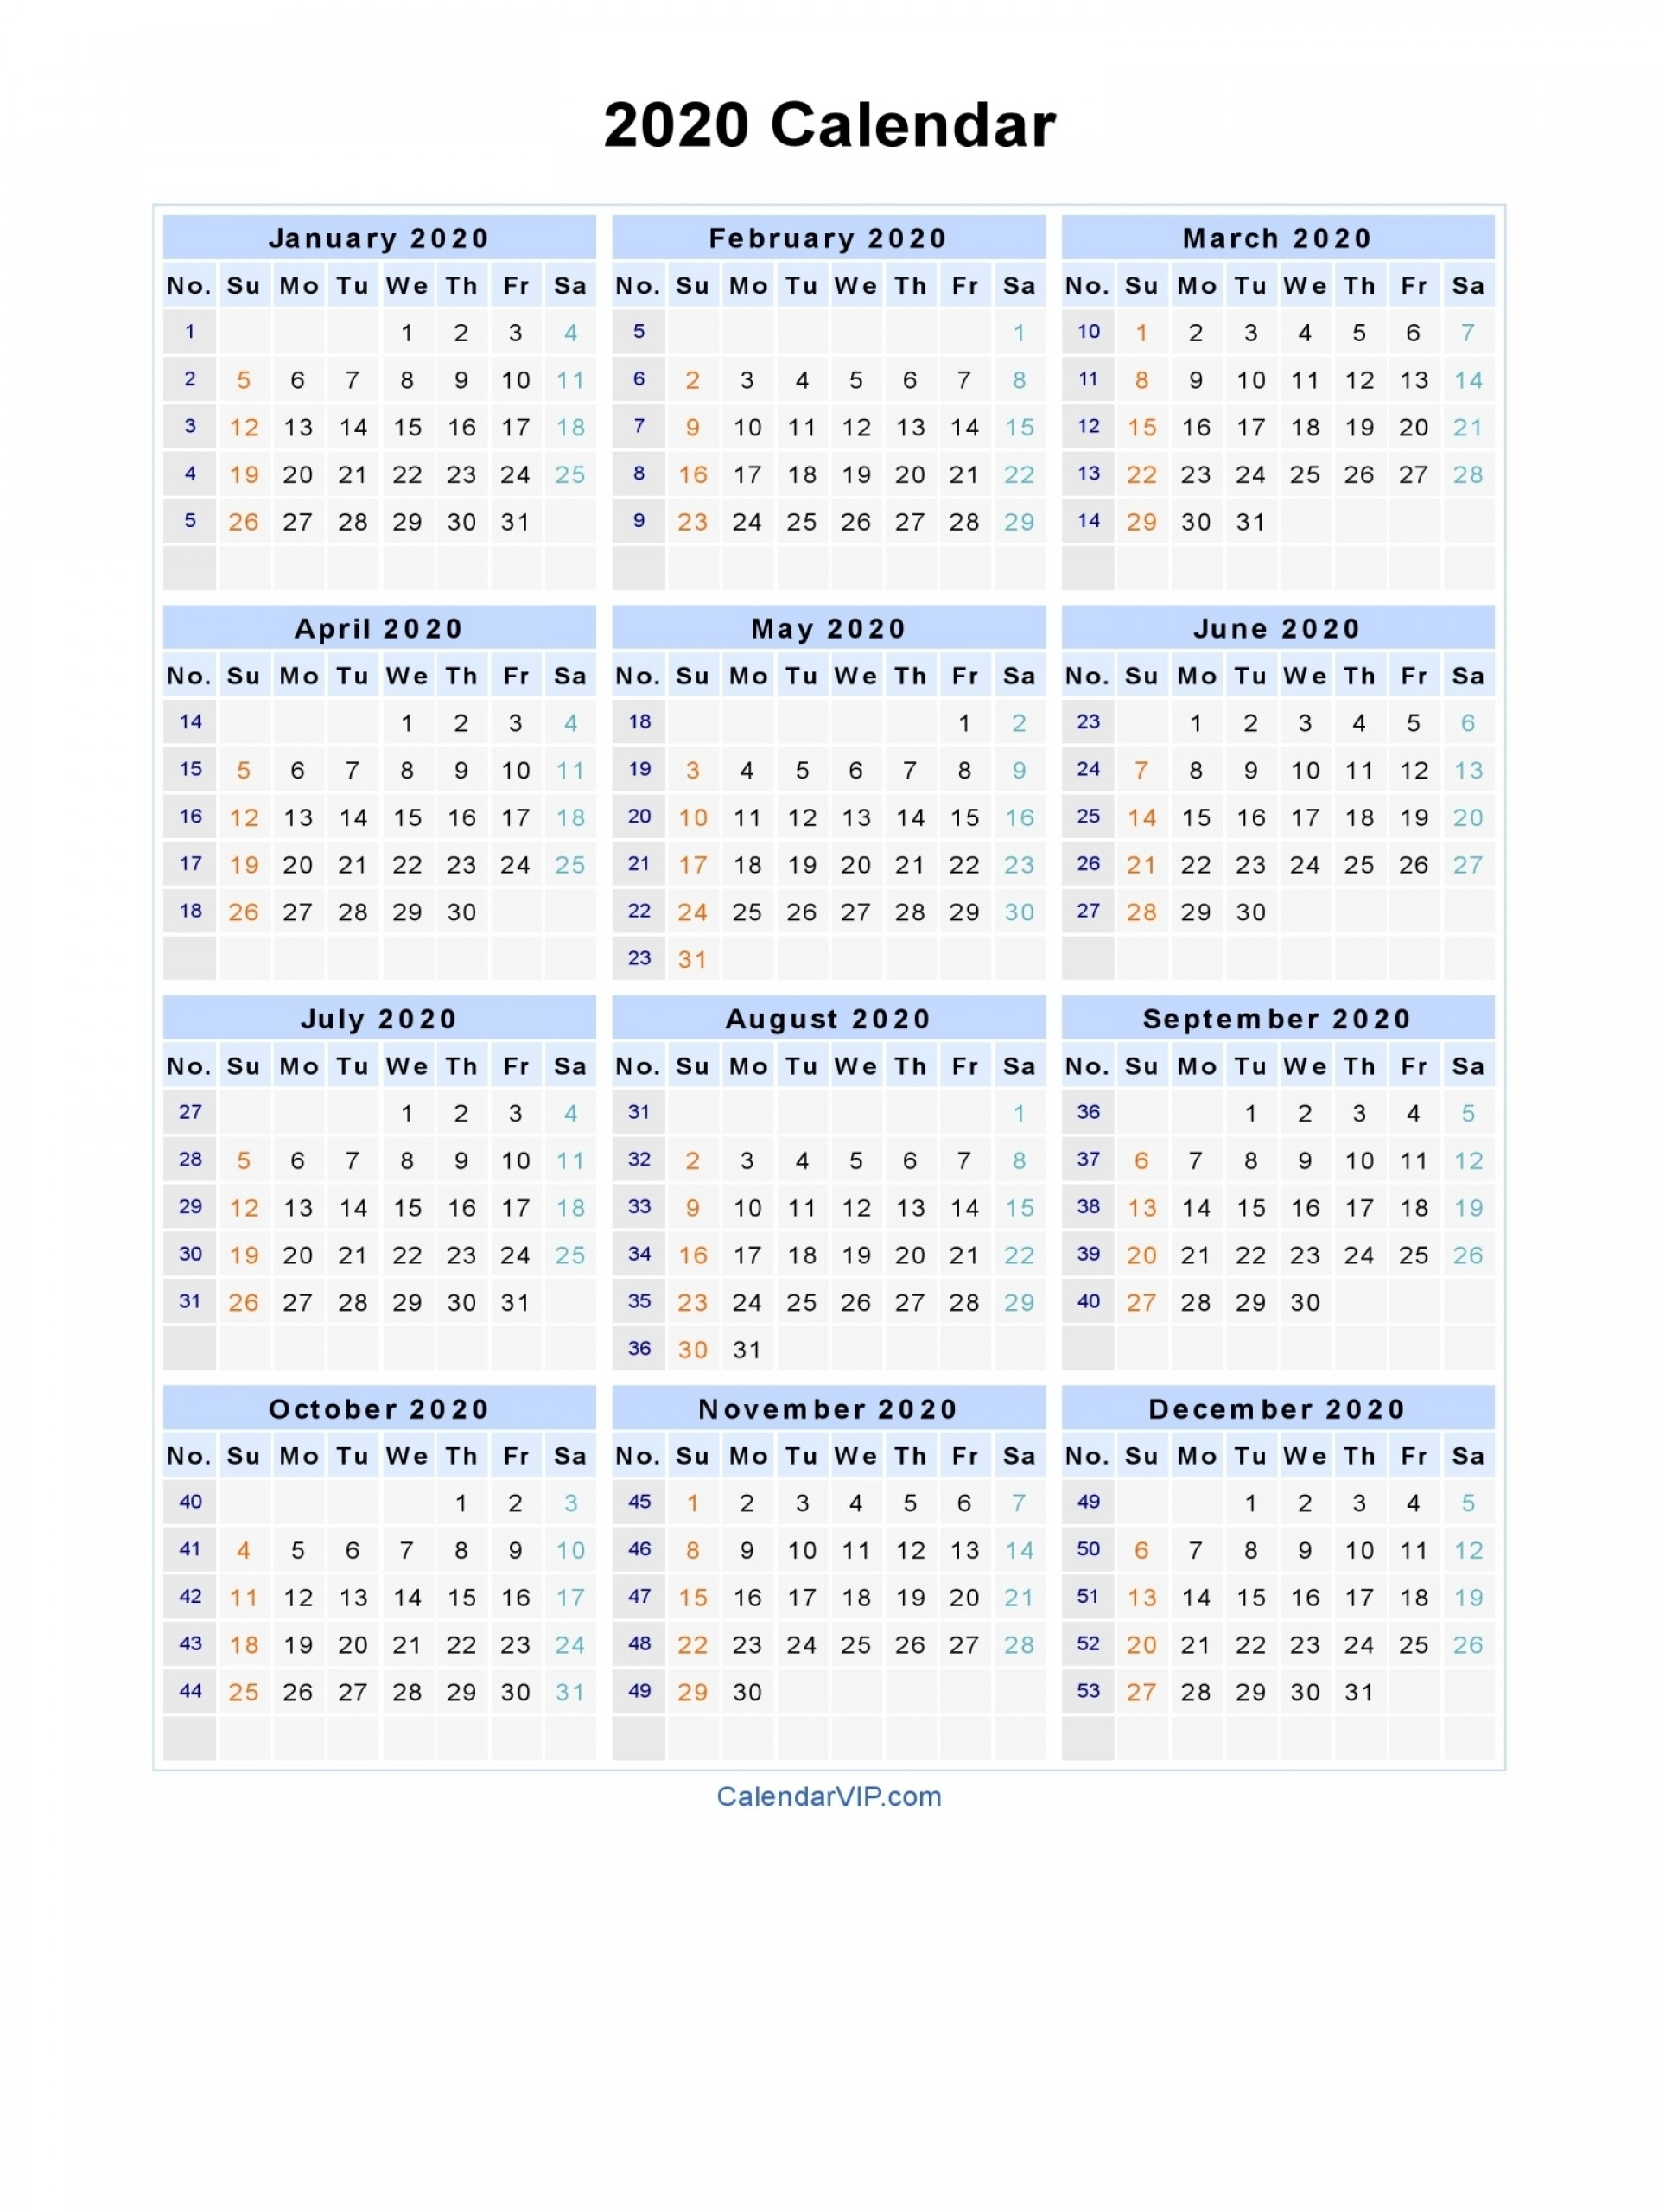 007 Calendar Blank Printable Template In Pdf Word Excel